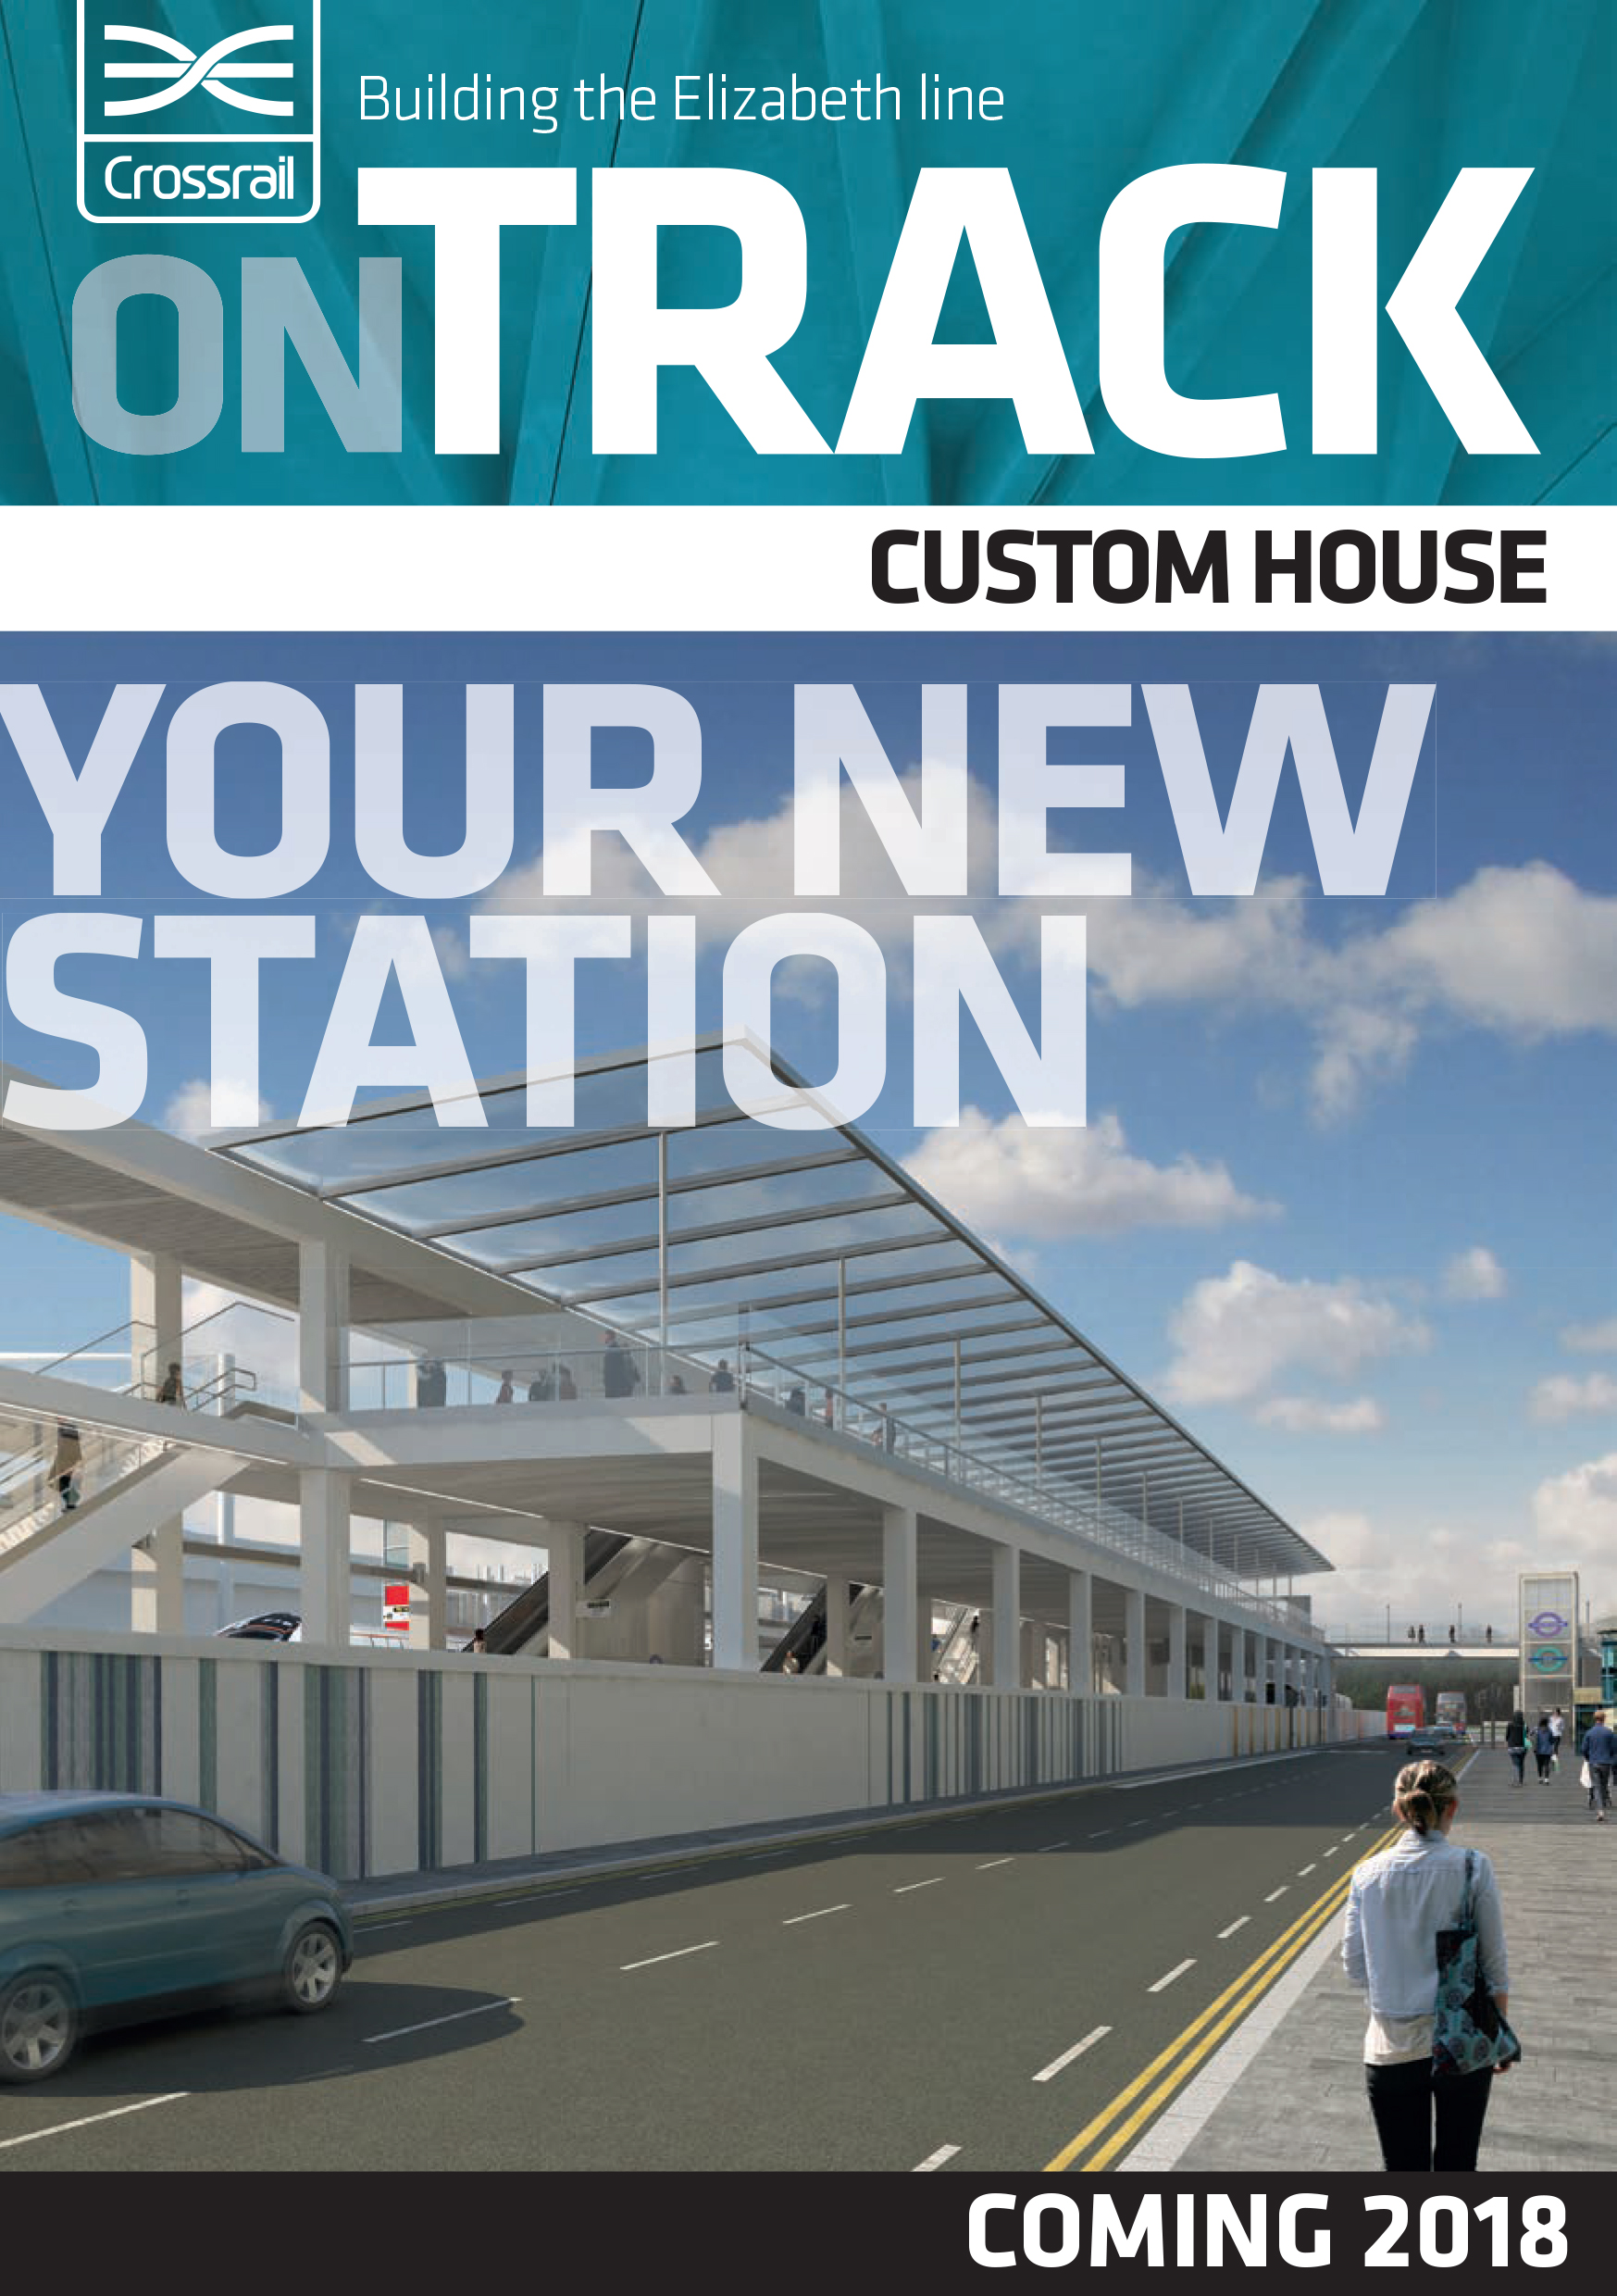 OnTrack Custom House